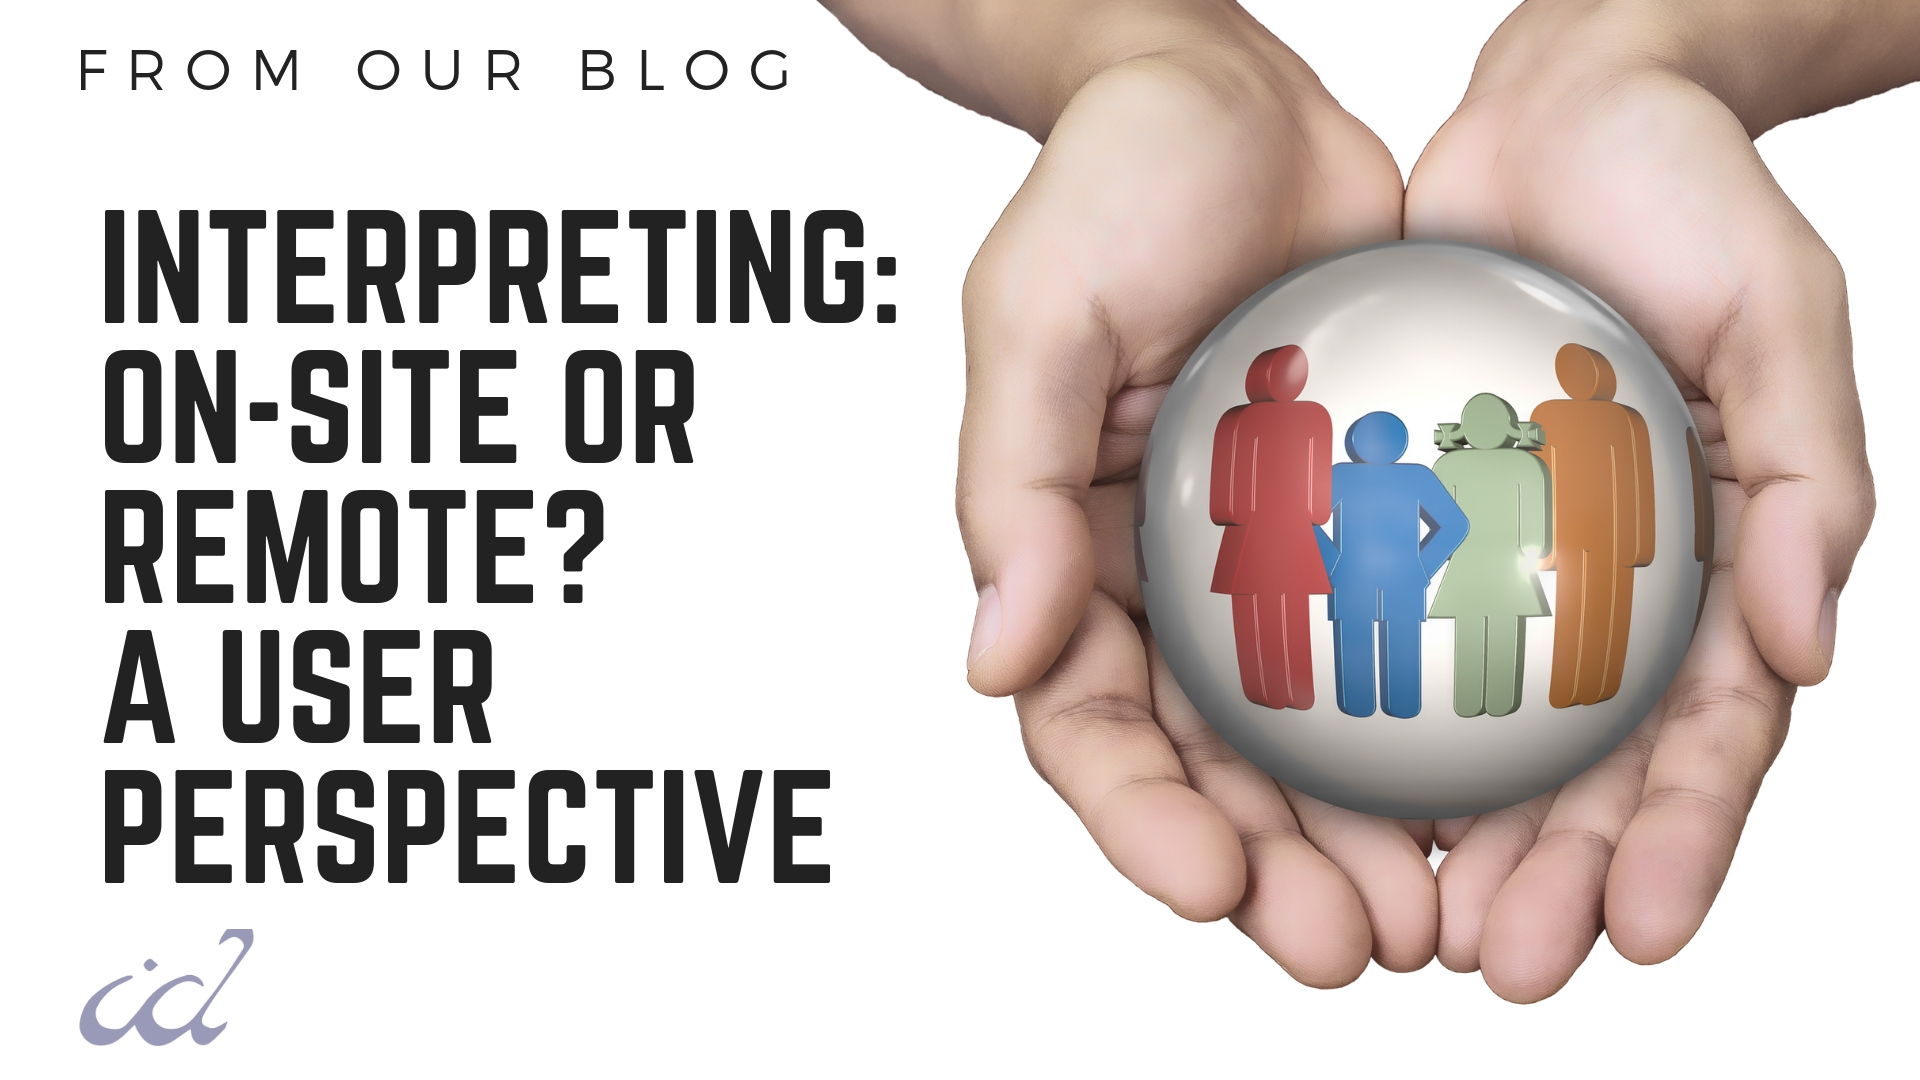 [Interpreting: On-Site or Remote? A User Perspective